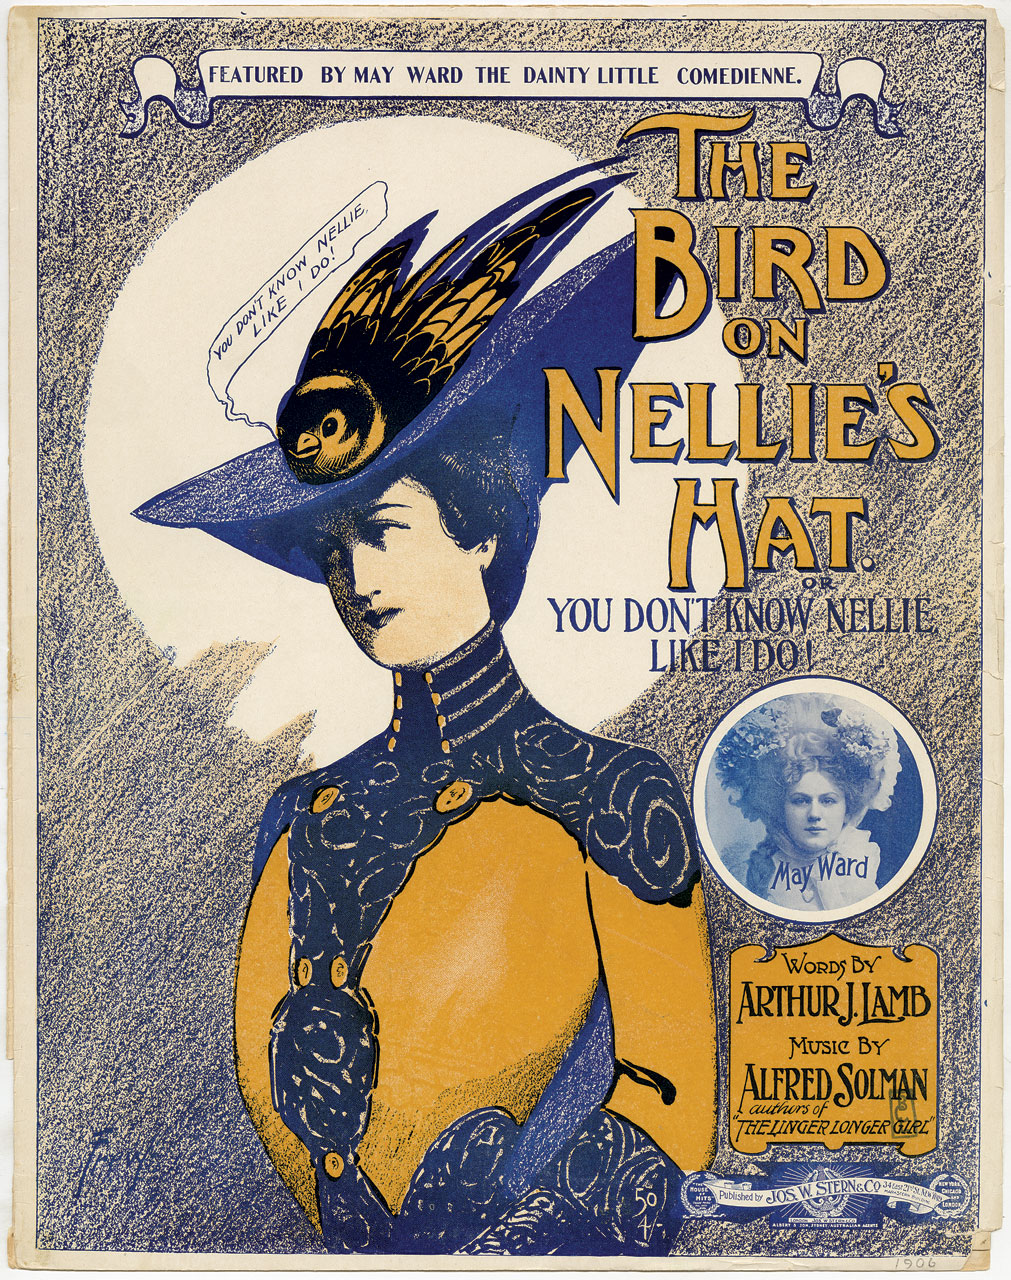 THE BIRD ON NELLIE'S HAT SHEET MUSIC, 1906.  New-York Historical   Society Library, Bella C. Landauer Collection.